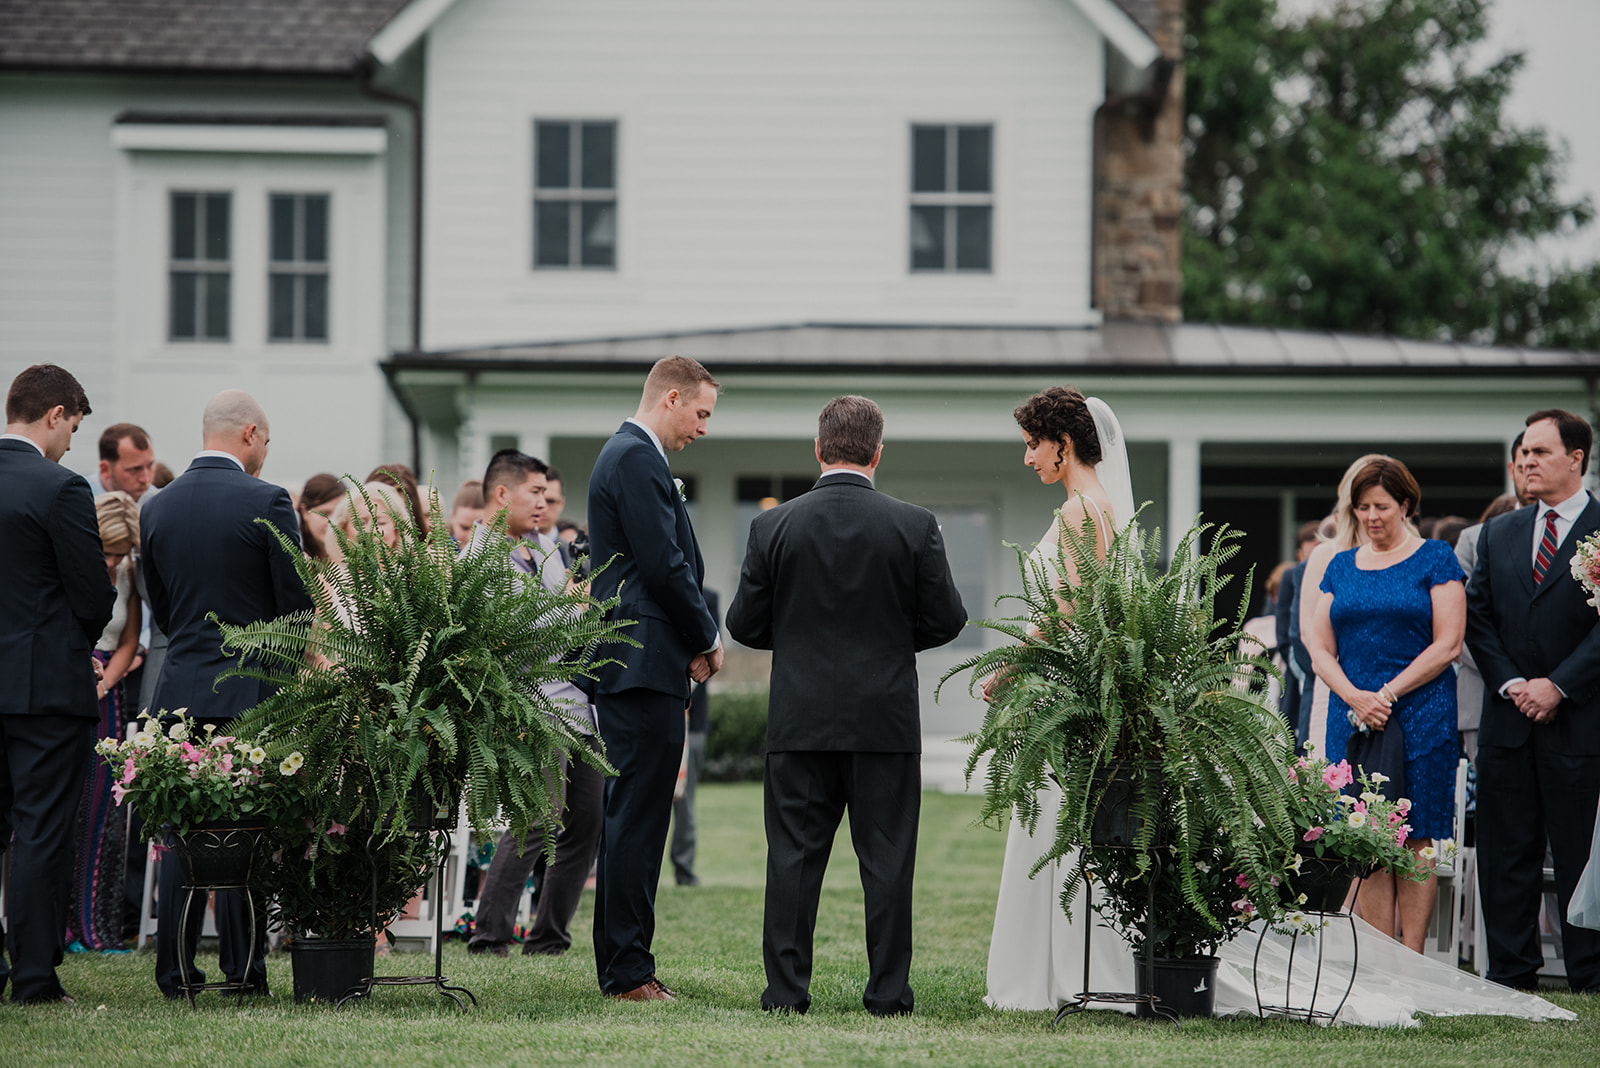 A bride and a groom get married between two ferns during their outdoor wedding ceremony at Blue Hill Farm in Waterford, VA.